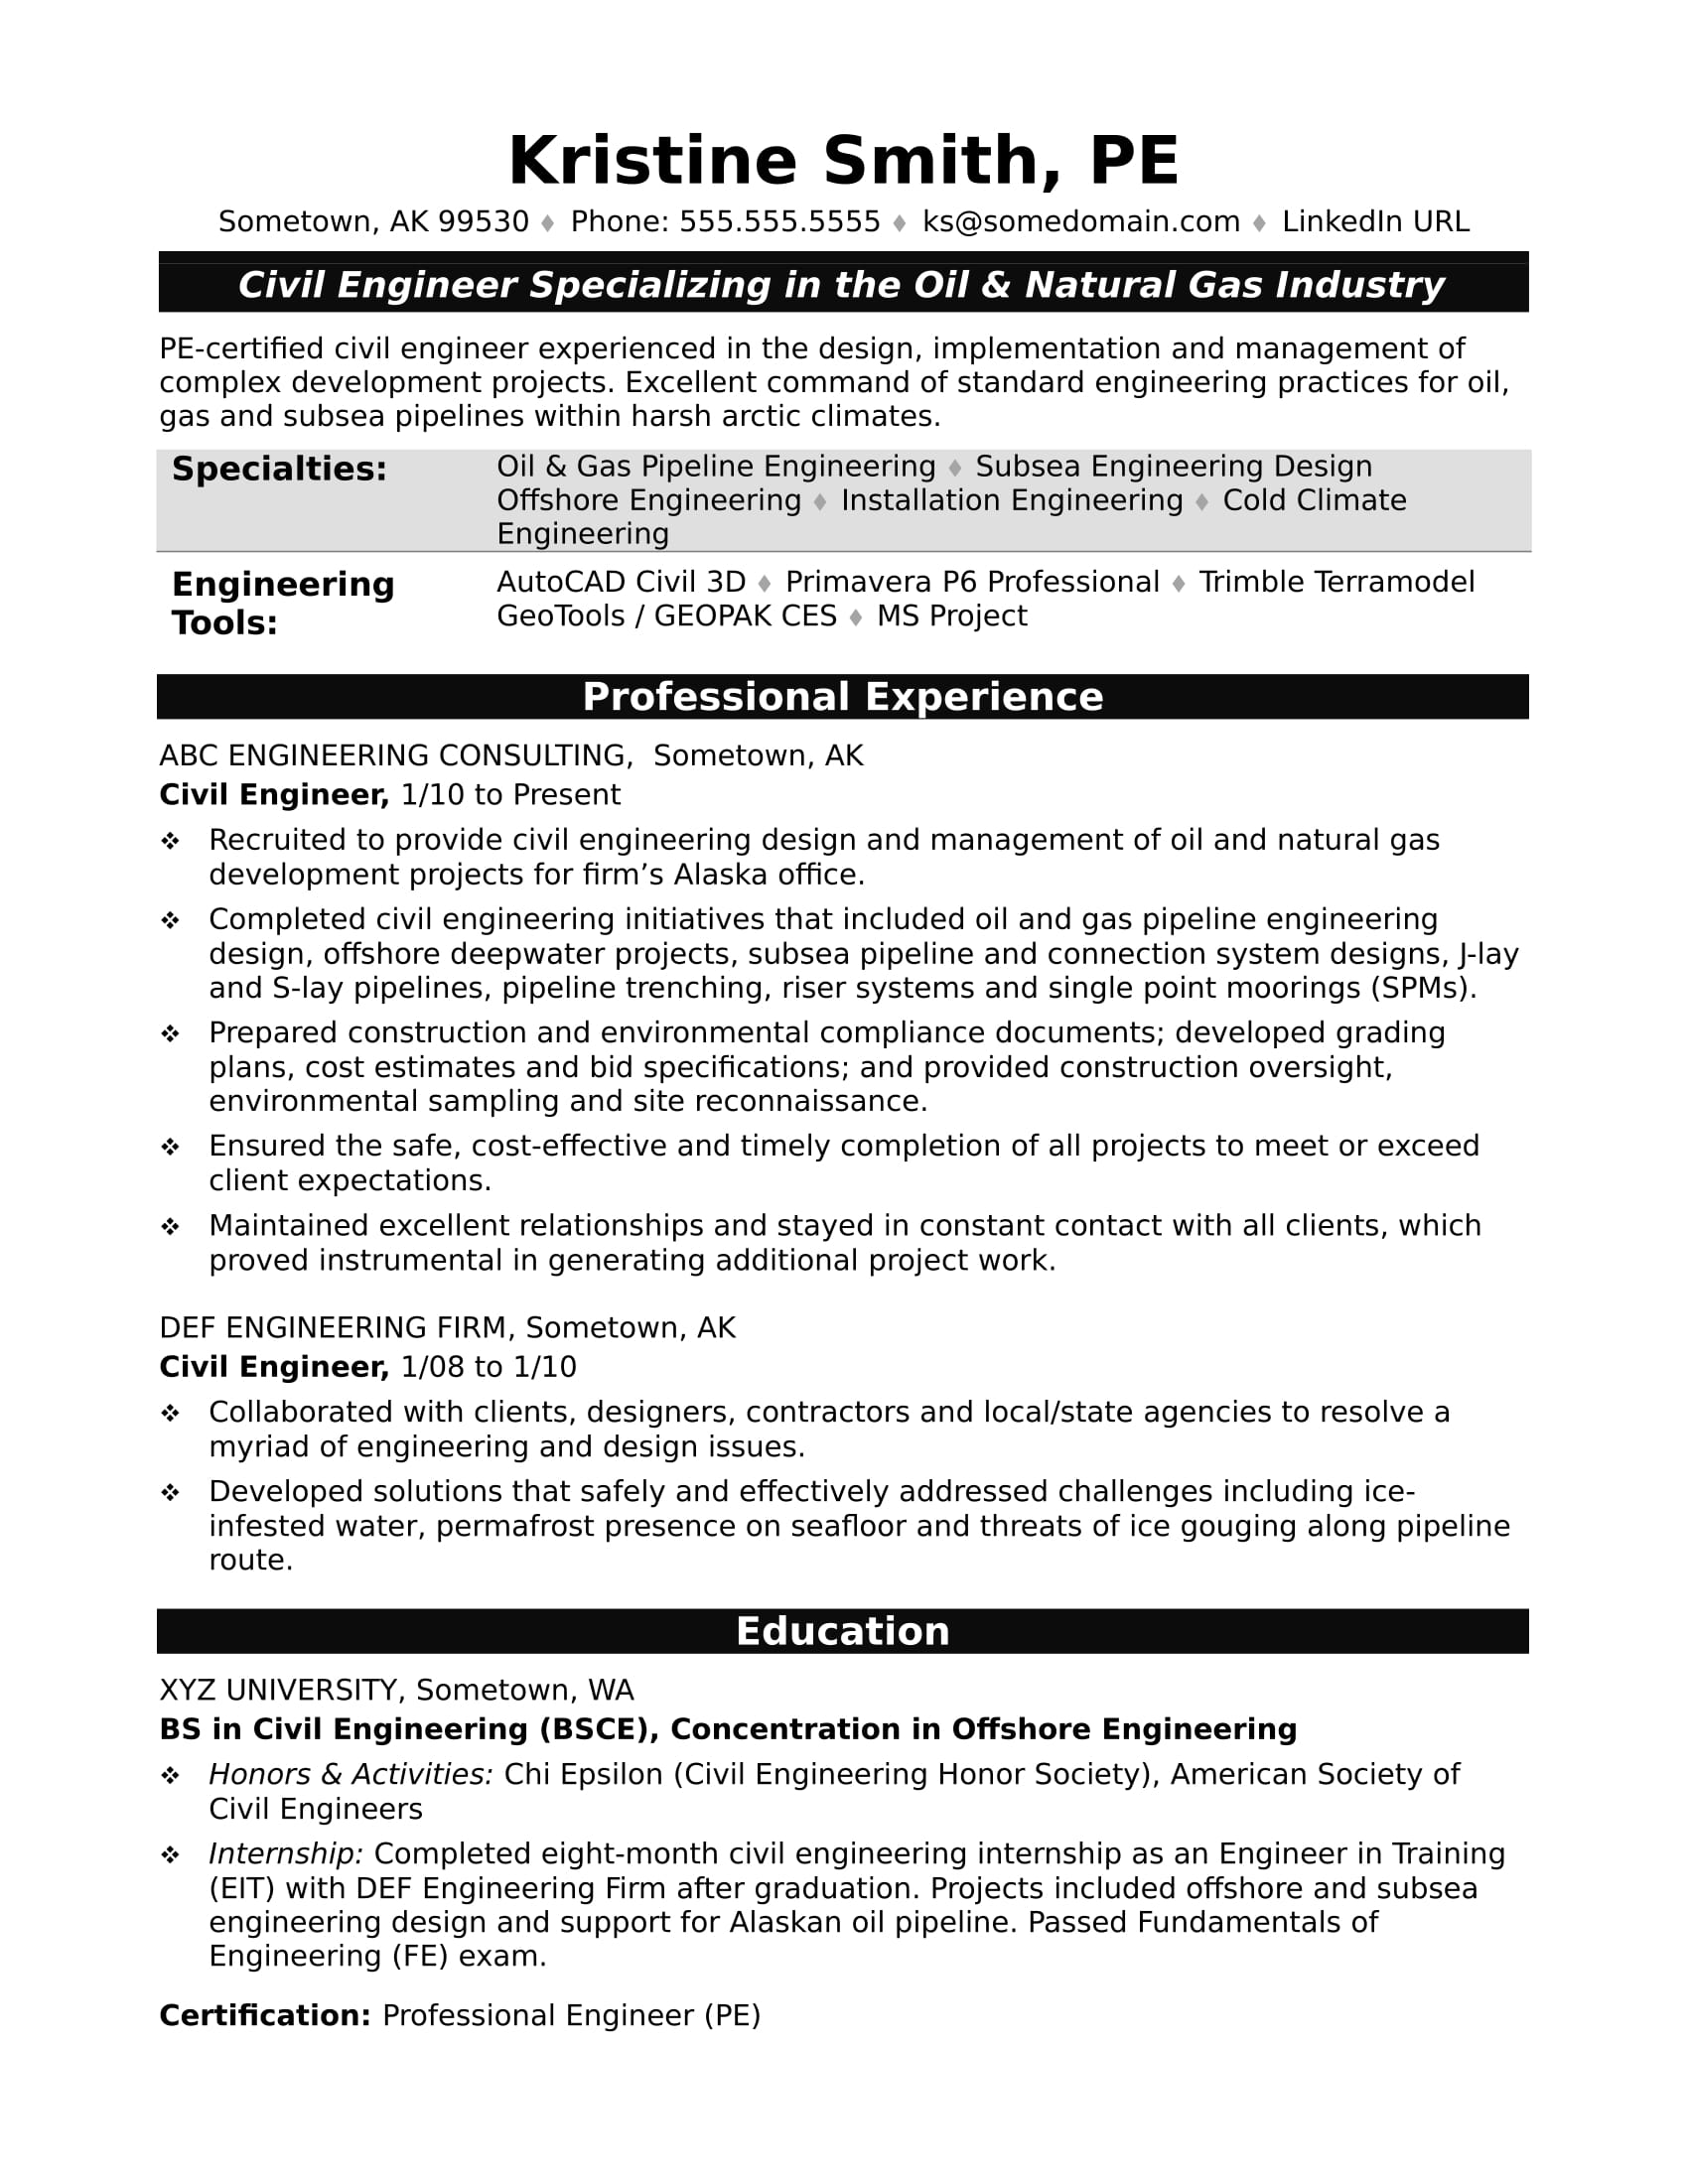 resume Civil Engineering Entry Level Resume sample resume for a midlevel civil engineer monster com engineer